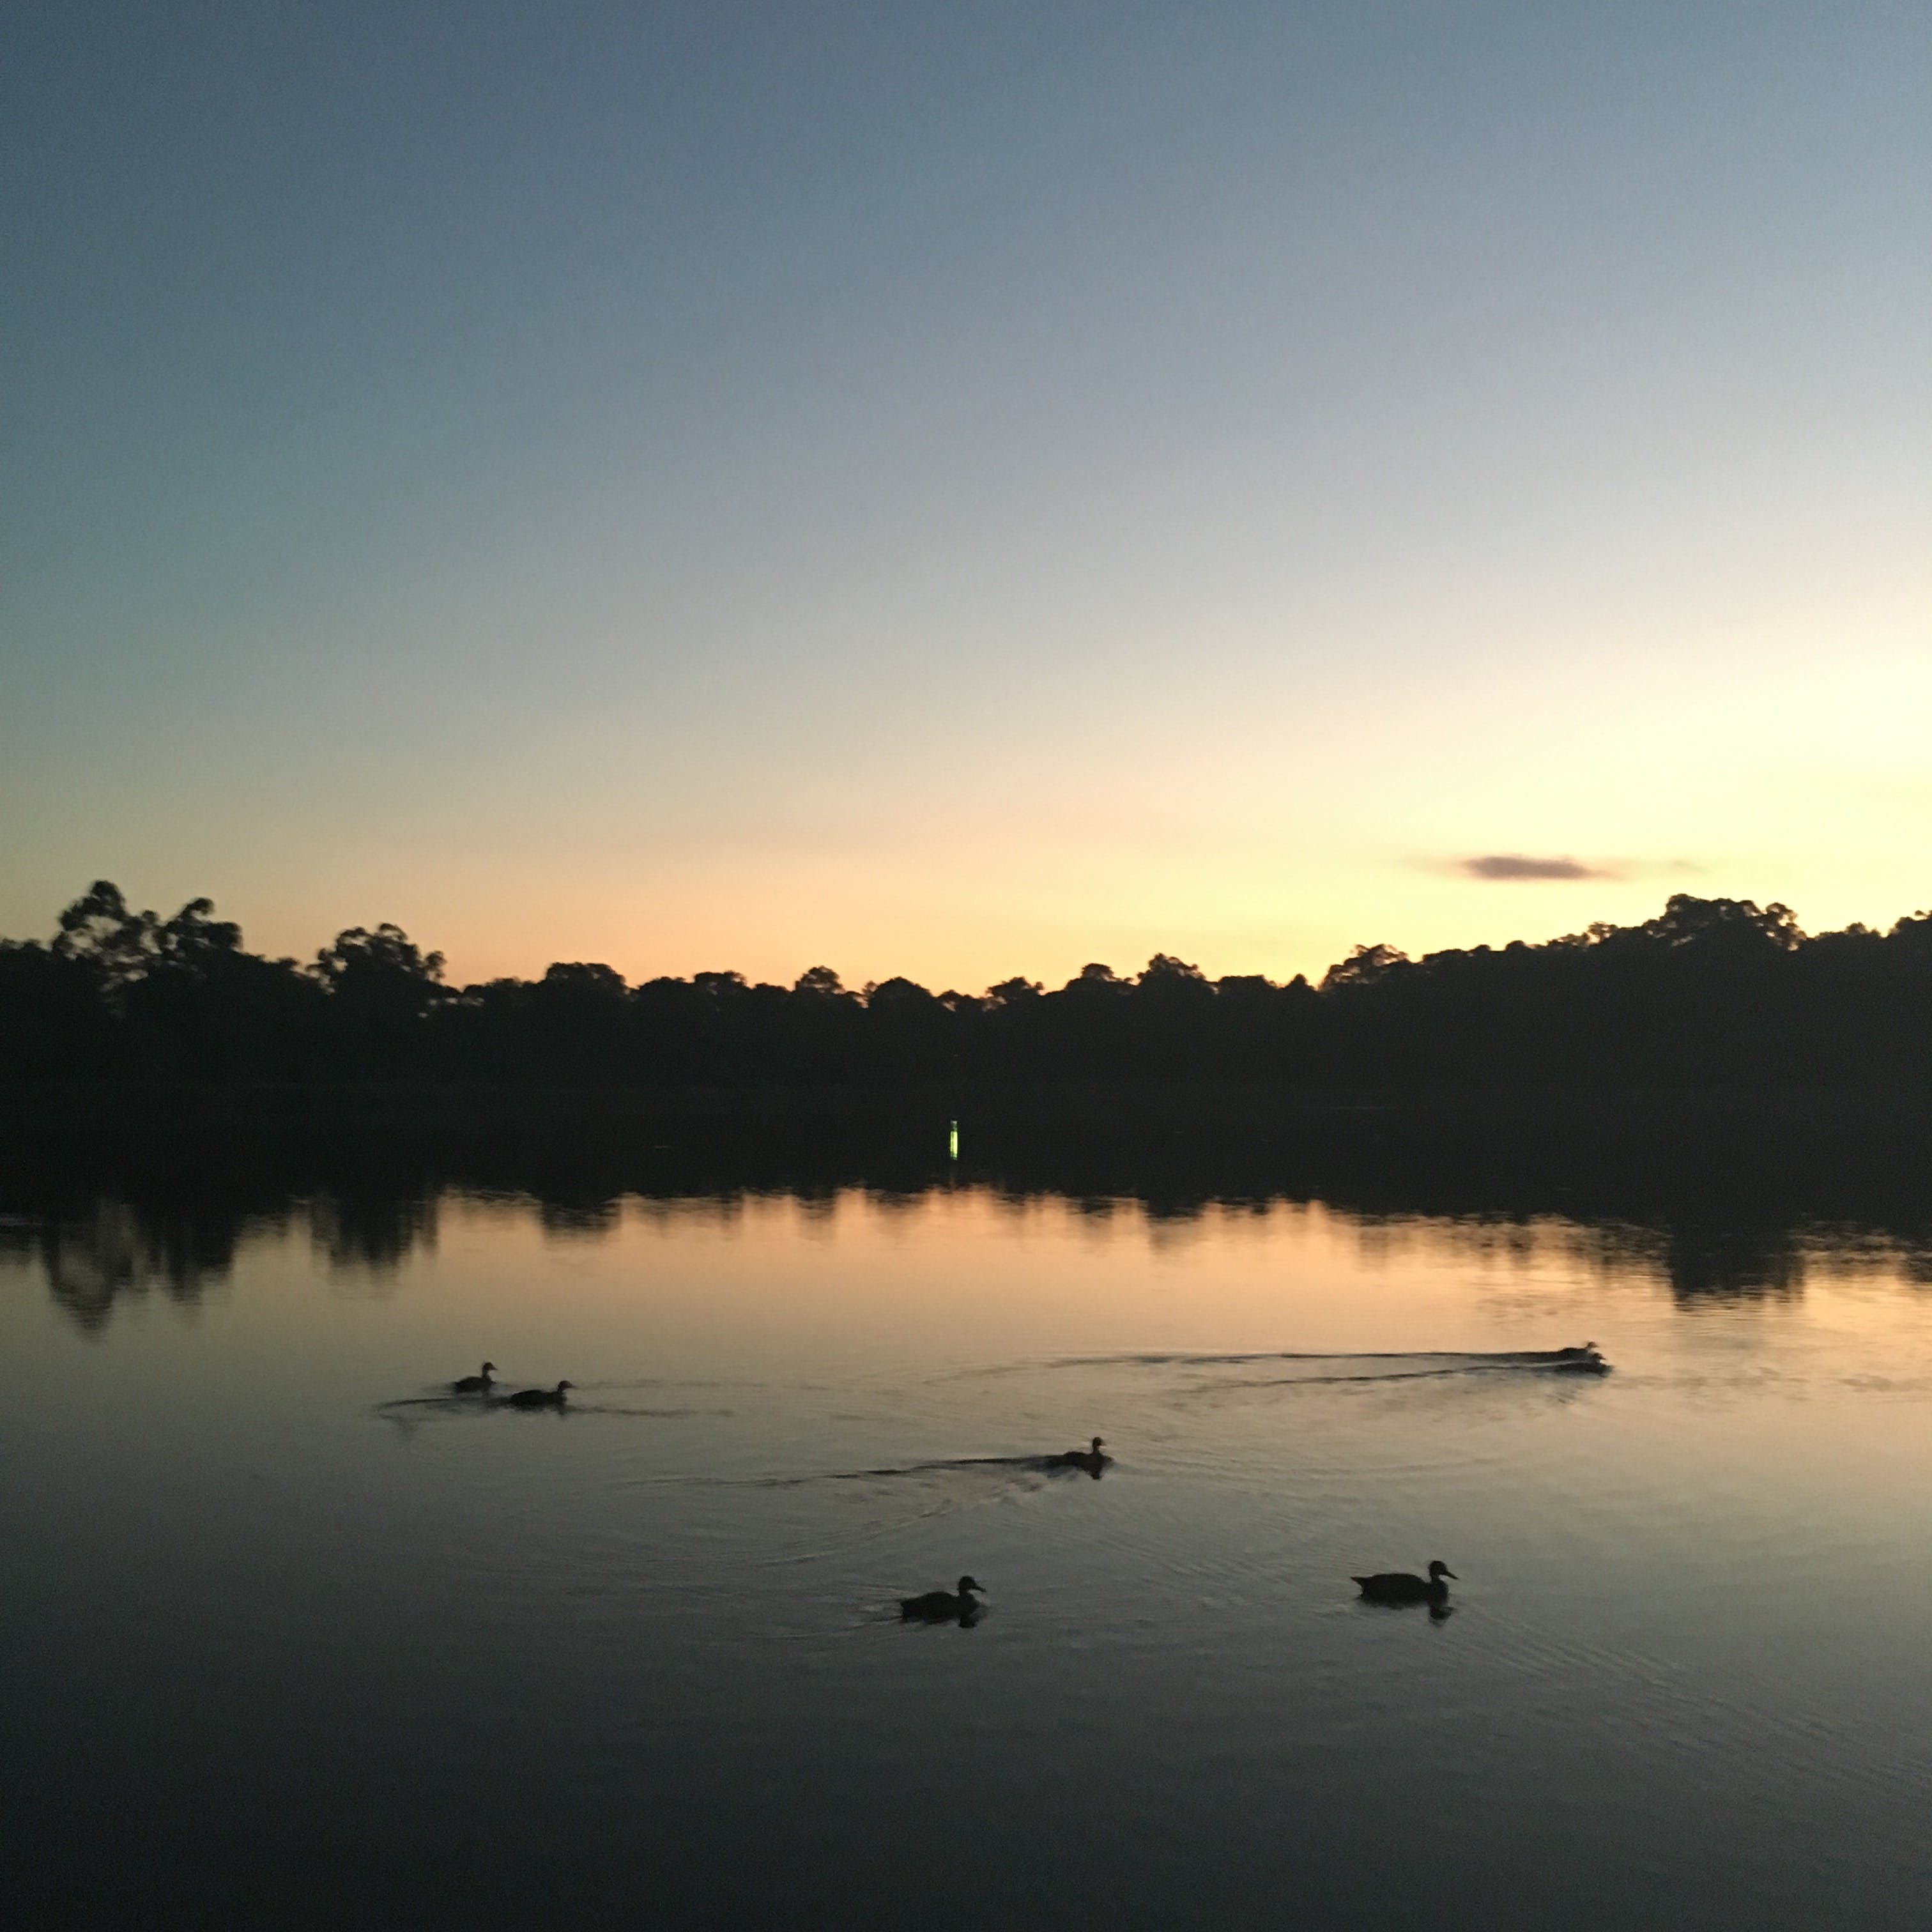 Enjoying seeing the sun set over Glenbrook Lagoon.